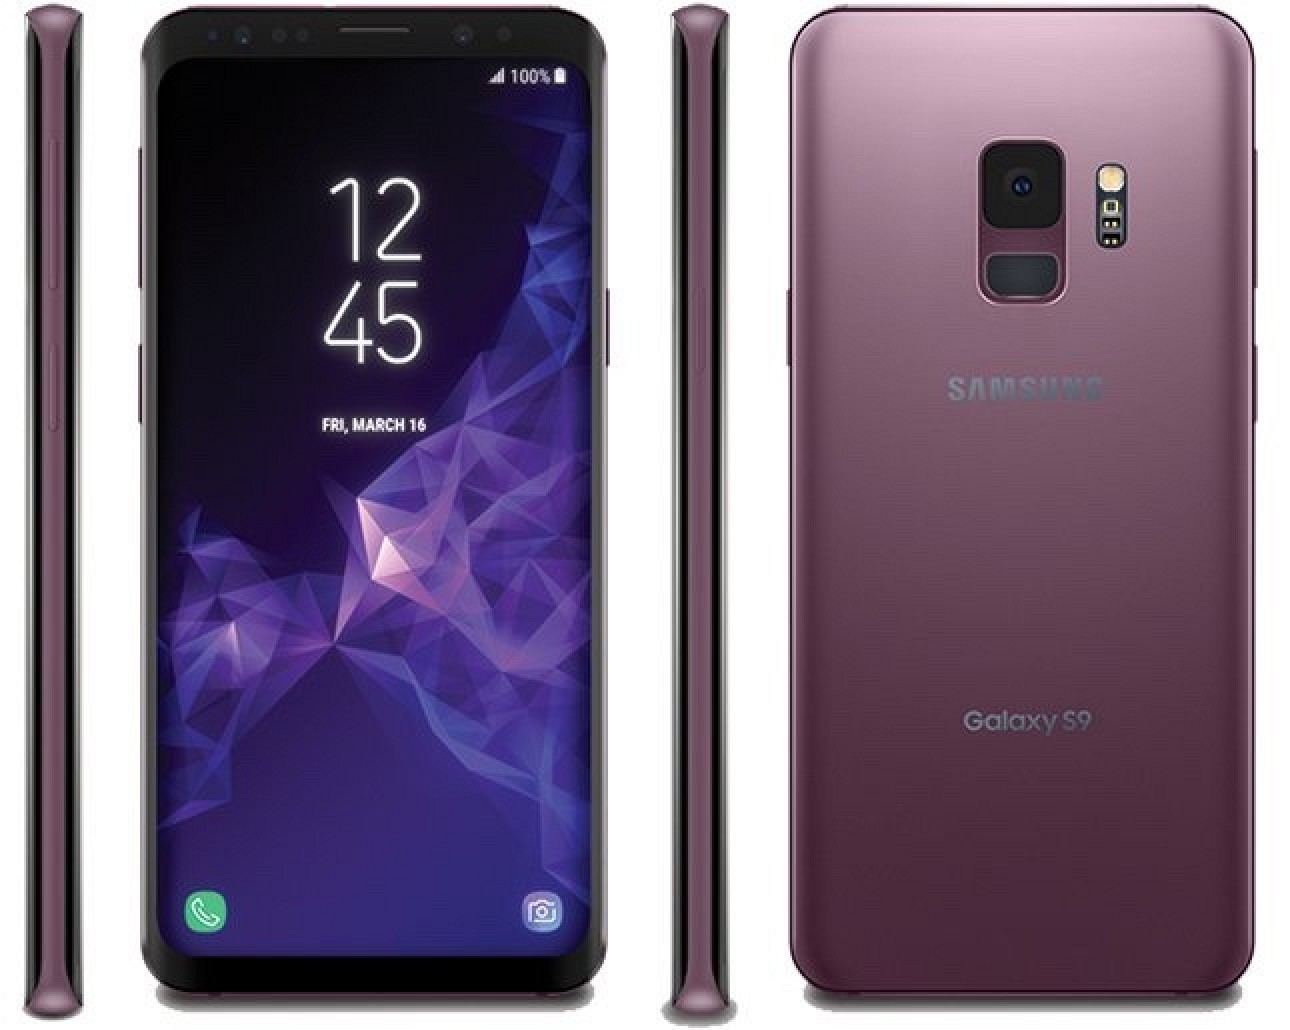 images of samsung 39 s galaxy s9 leak ahead of rumored february unveiling mac rumors. Black Bedroom Furniture Sets. Home Design Ideas